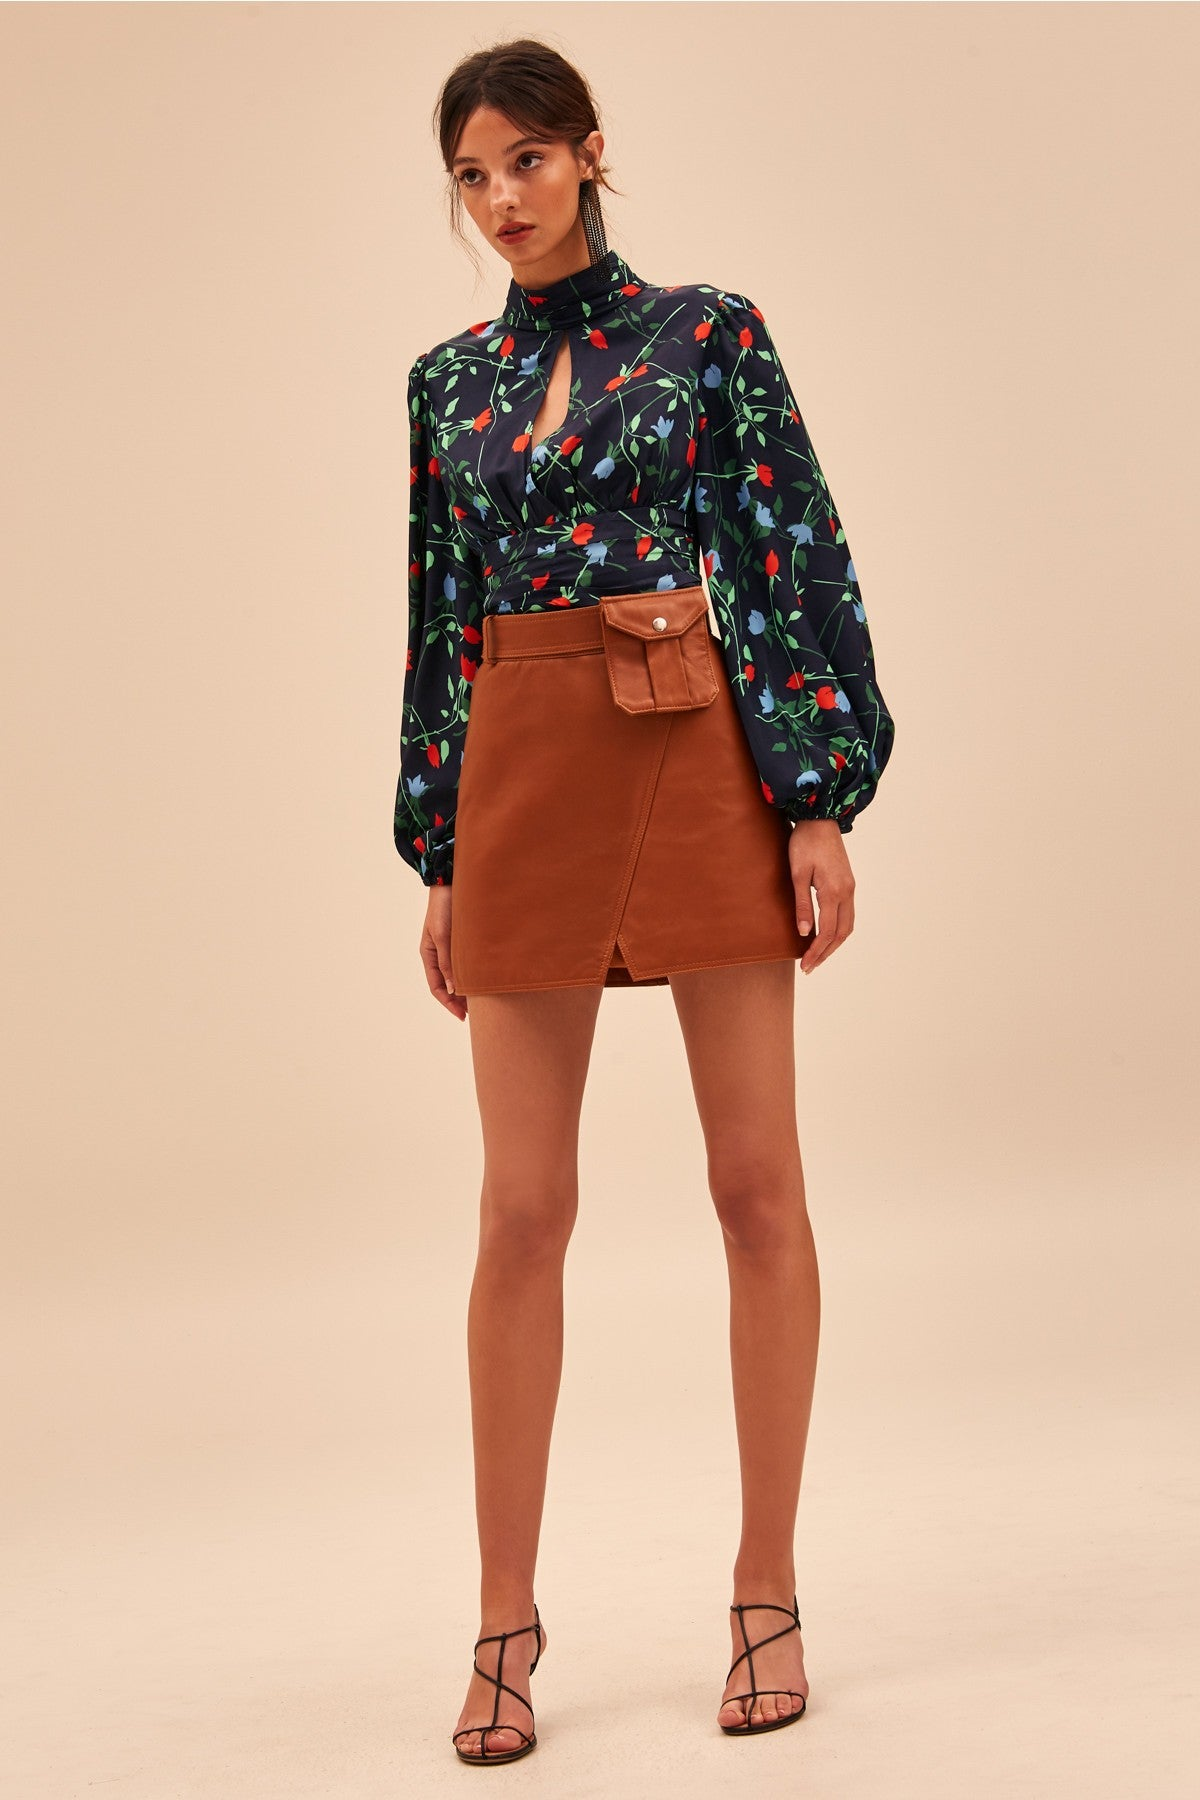 SECTIONAL LONG SLEEVE TOP navy floral